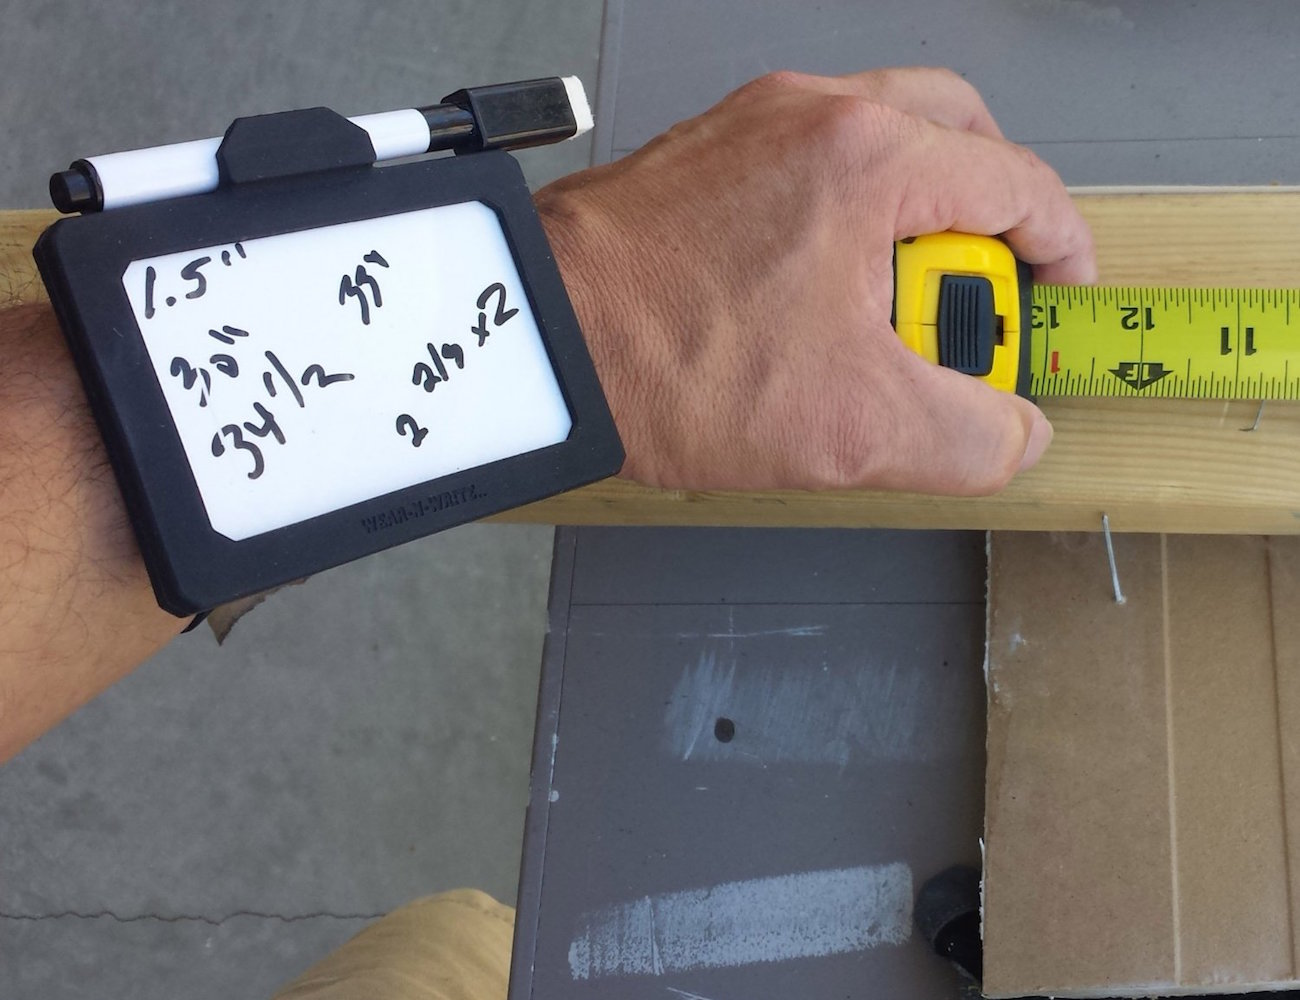 Wear-N-Write+%26%238211%3B+Dry+Erase+Board+That+You+Wear+On+Your+Wrist